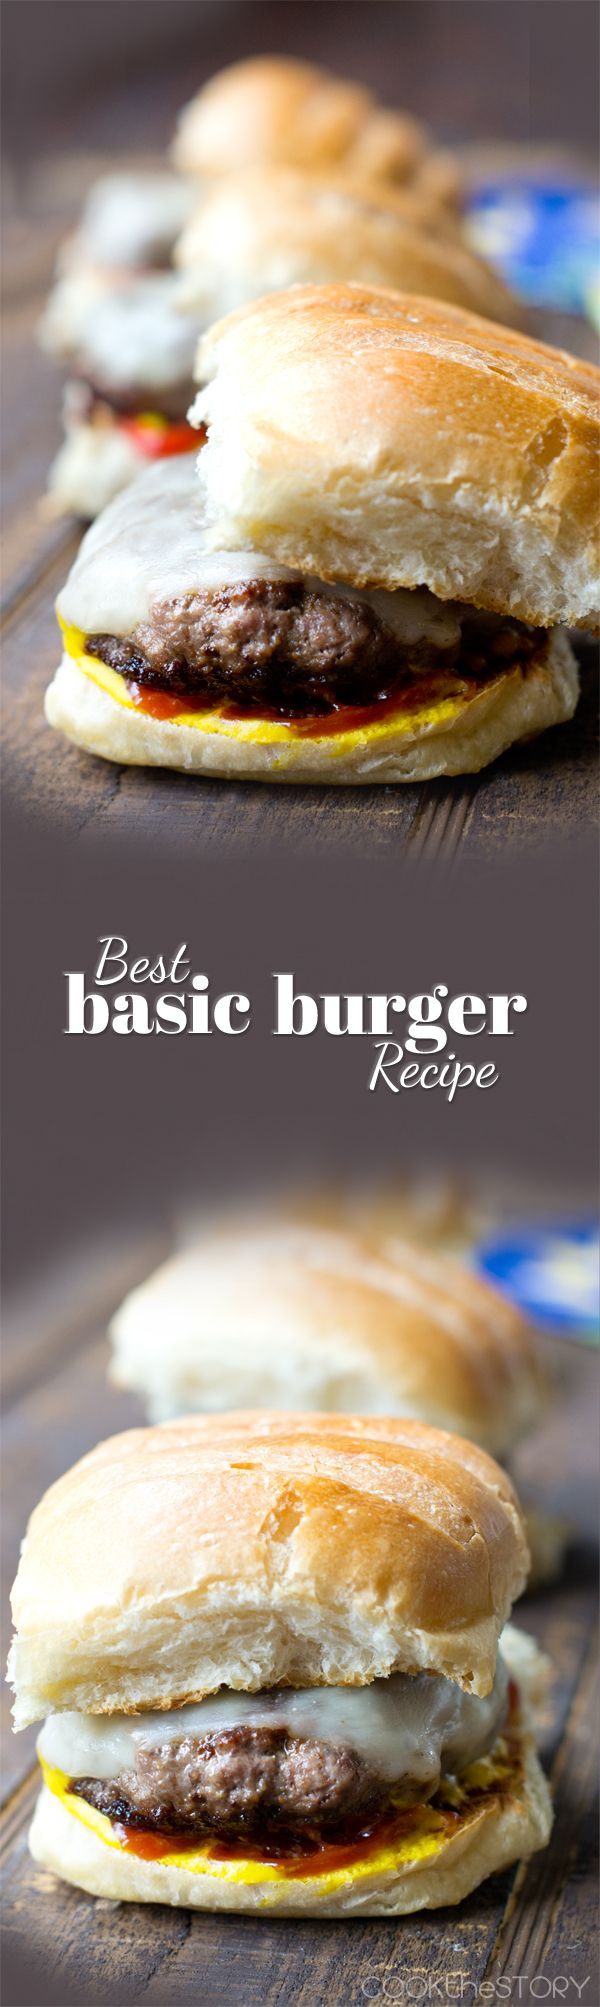 Best Basic Hamburger Recipe - Learn how to season, shape, and grill a hamburger to juicy perfection.